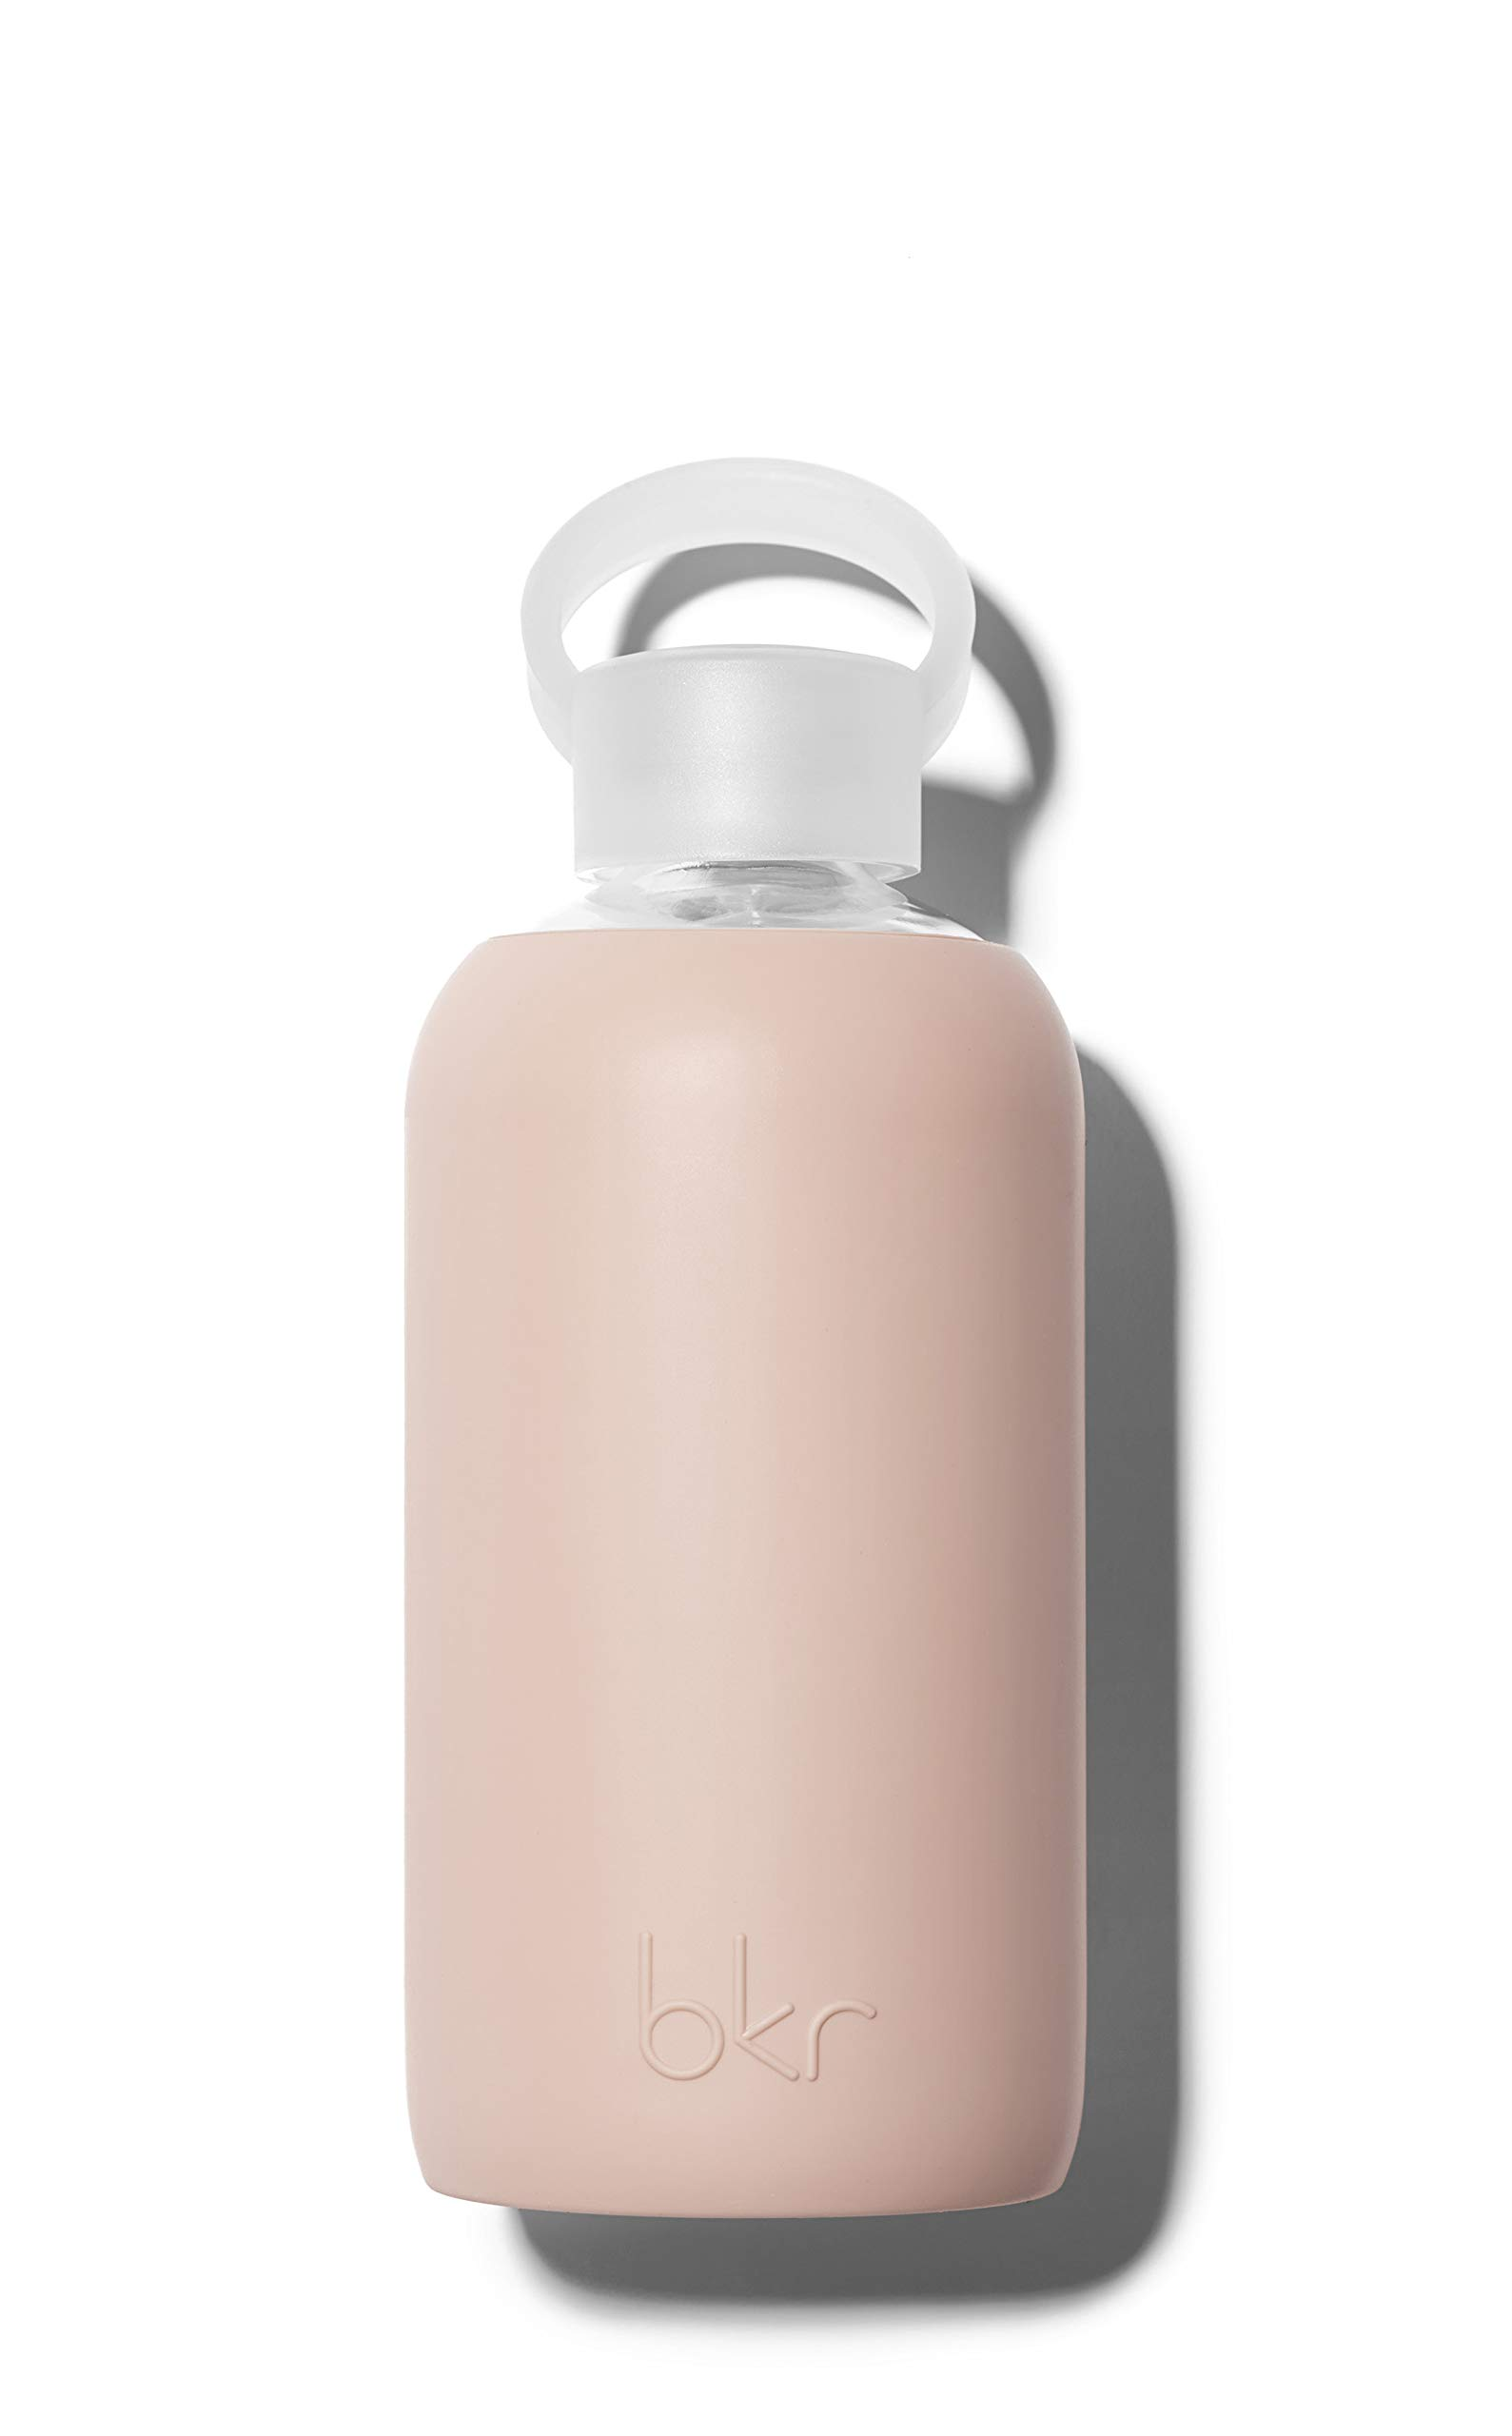 bkr BPA-Free Silicone Sleeve Glass Water Bottle, 16oz / 500 ml - Naked - Opaque Light Chocolate Milk Nude by bkr (Image #1)